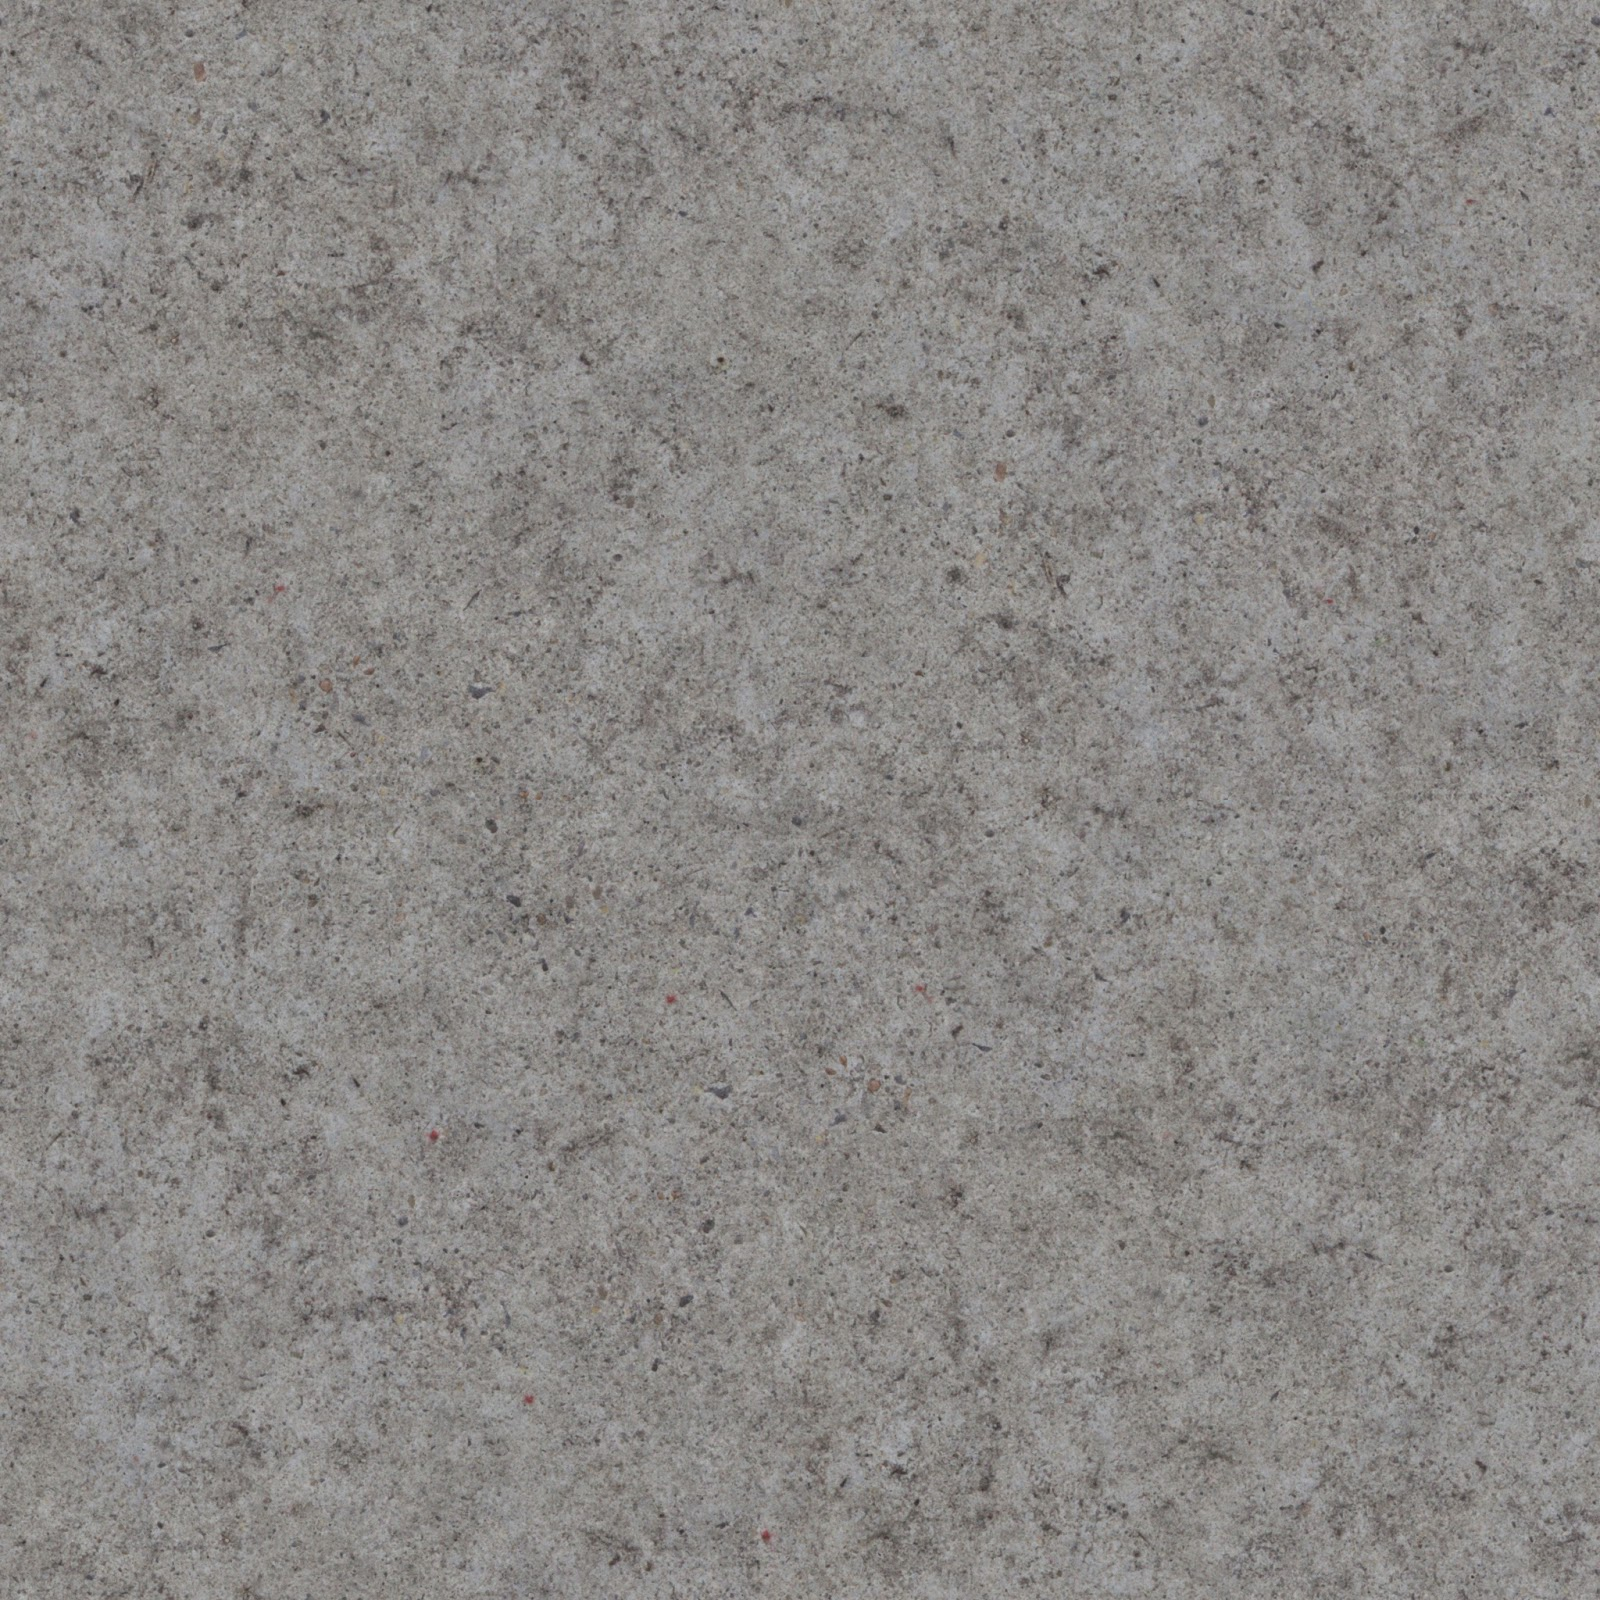 Concrete granite wall flat seamless texture 2048x2048